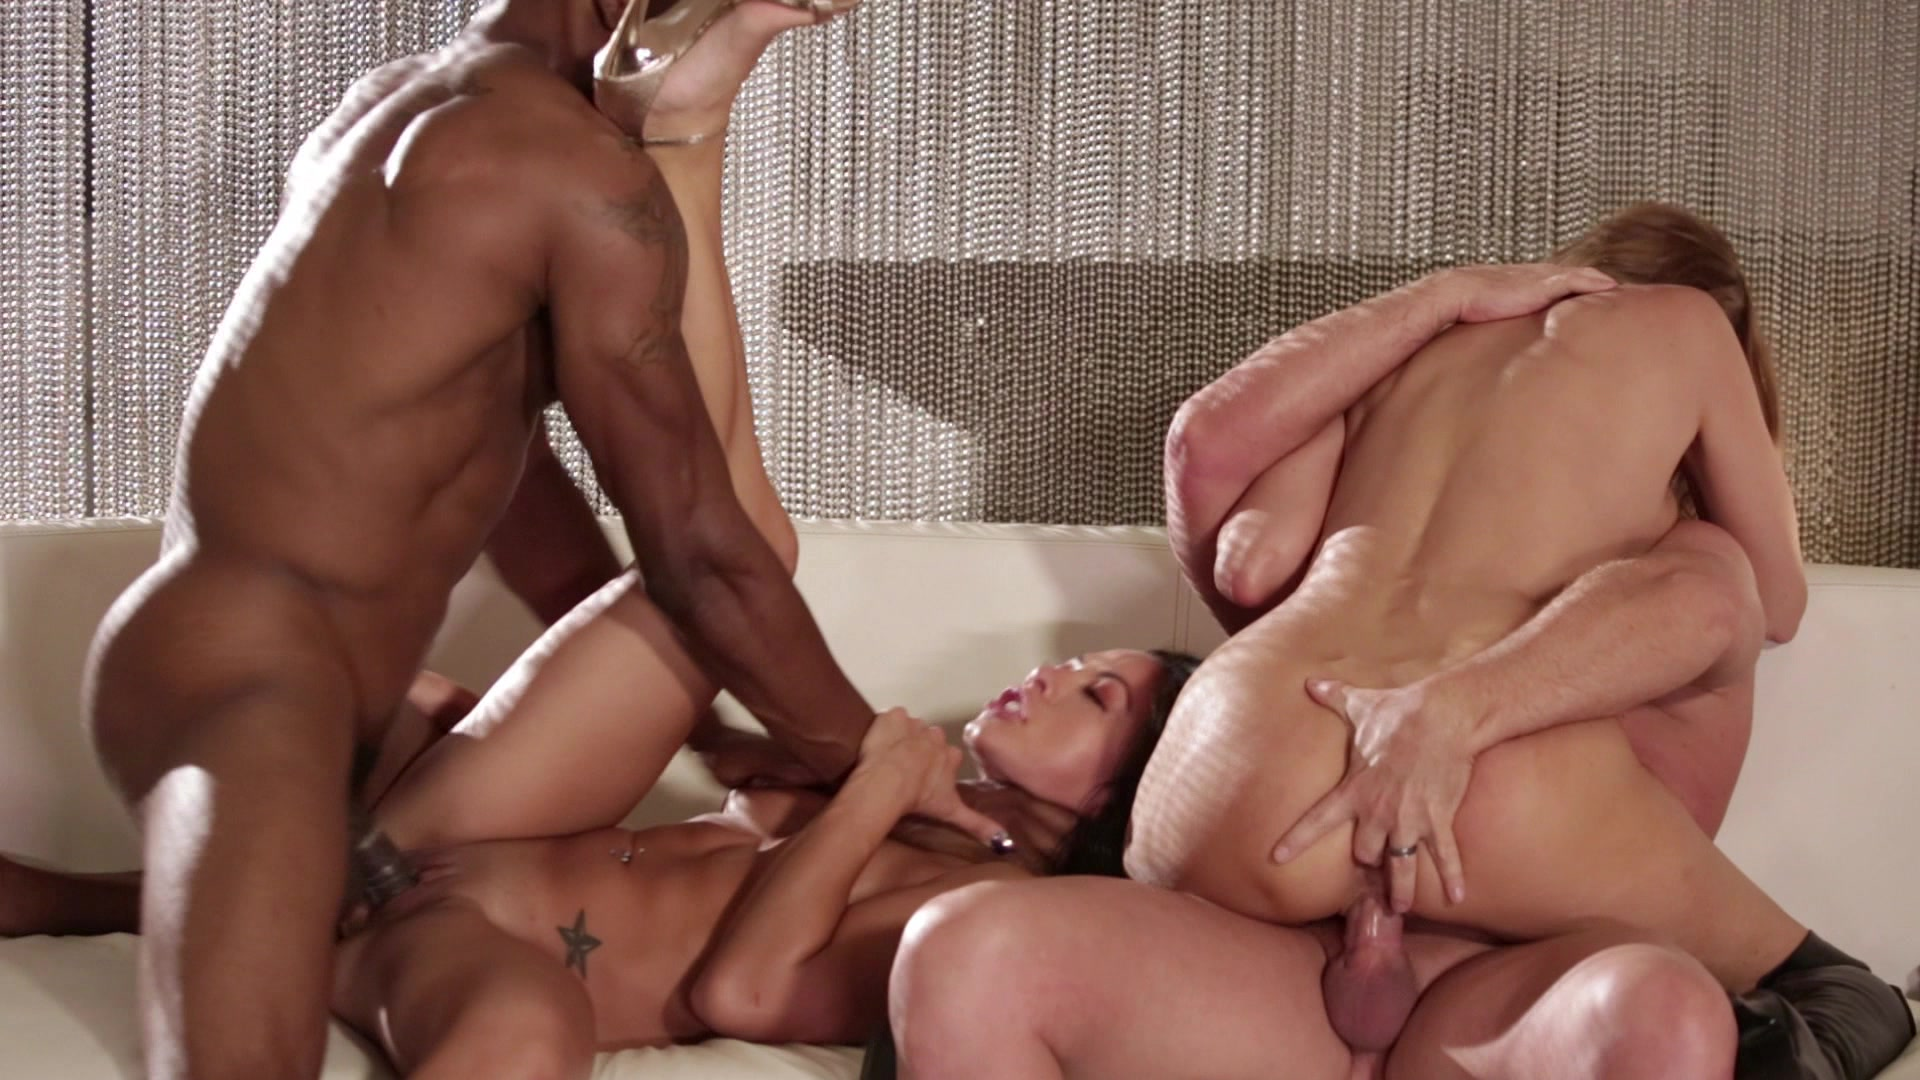 Scene with Jessica Drake, Morgan Lee and Honey Gold - image 15 out of 20